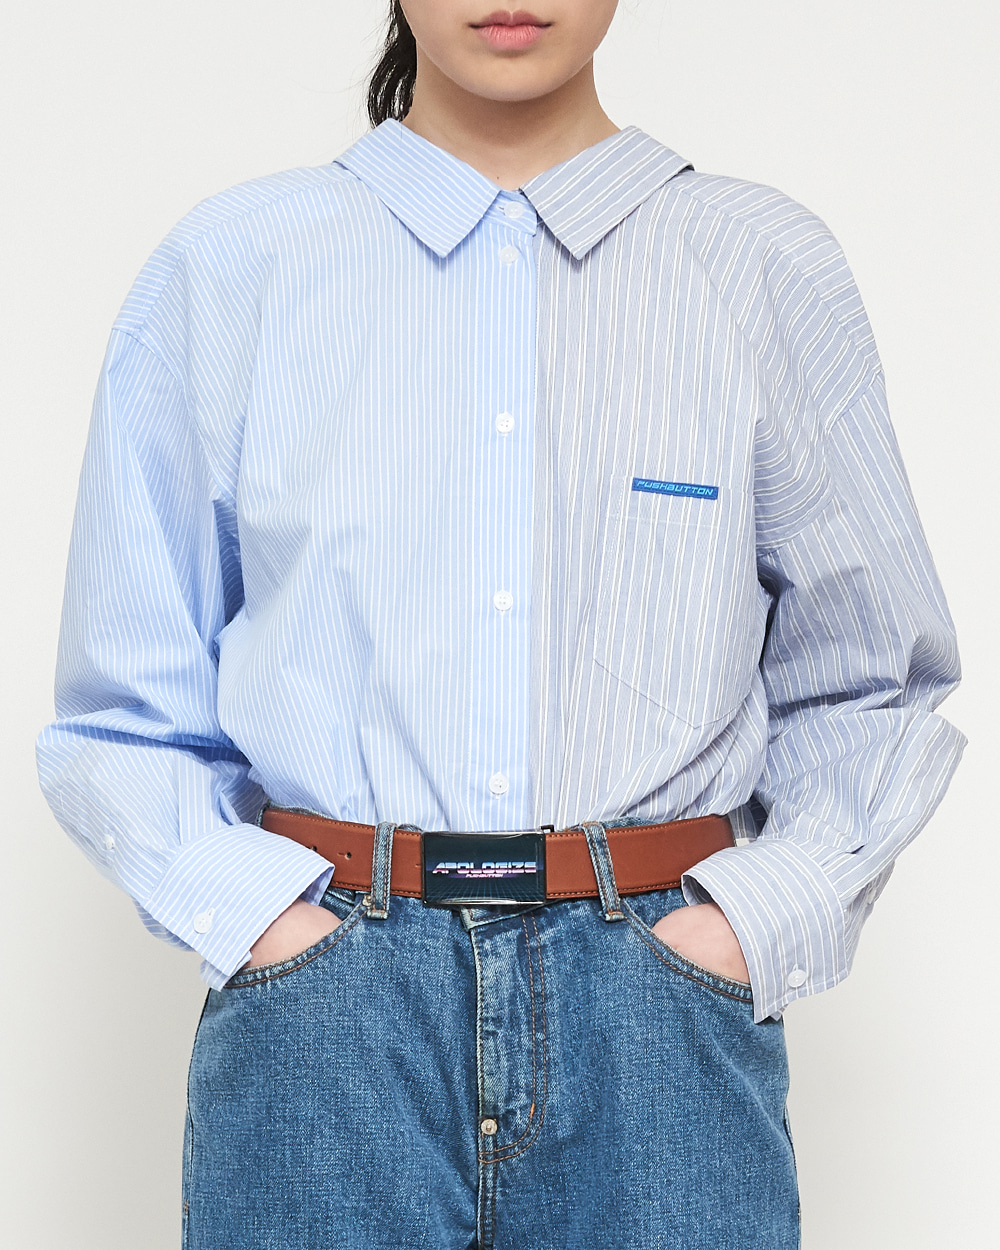 SS19 2-WAY SWING COTTON SHIRT